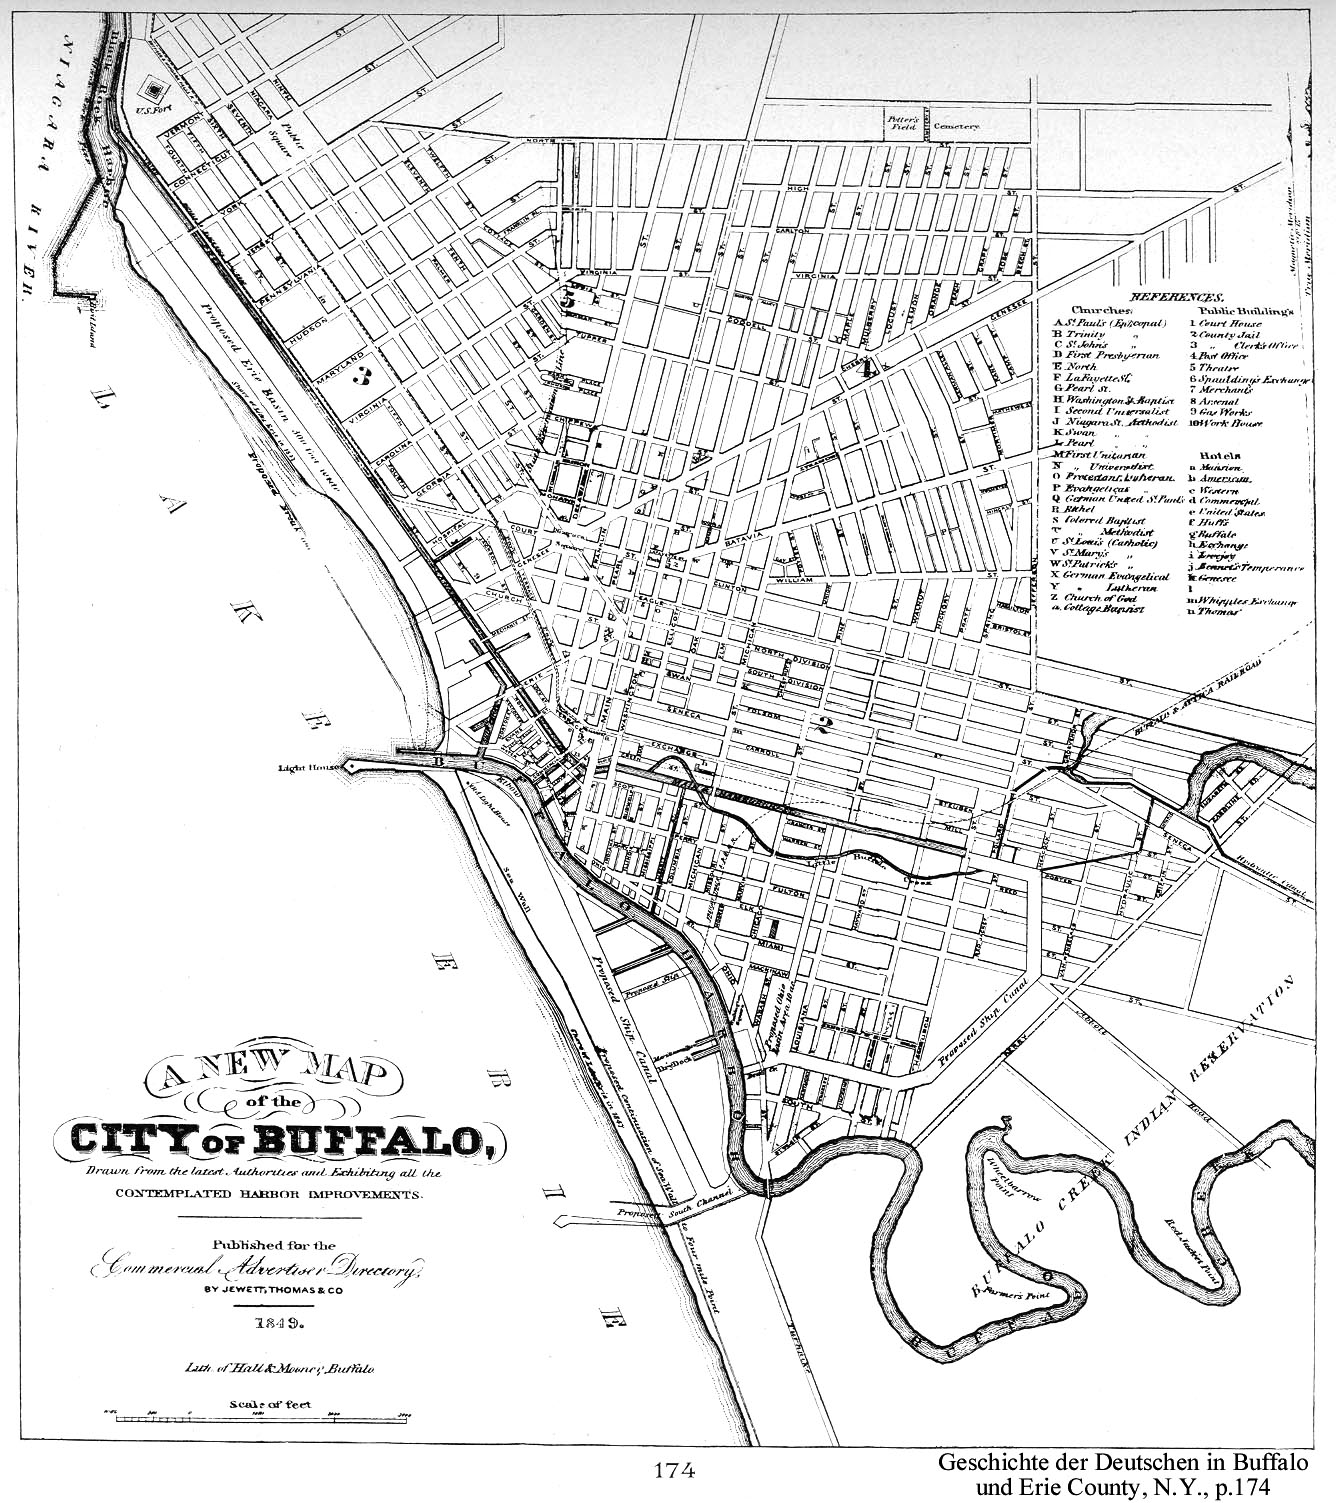 Online Maps - Buffalo, New York in Maps, Charts, and Images ... on